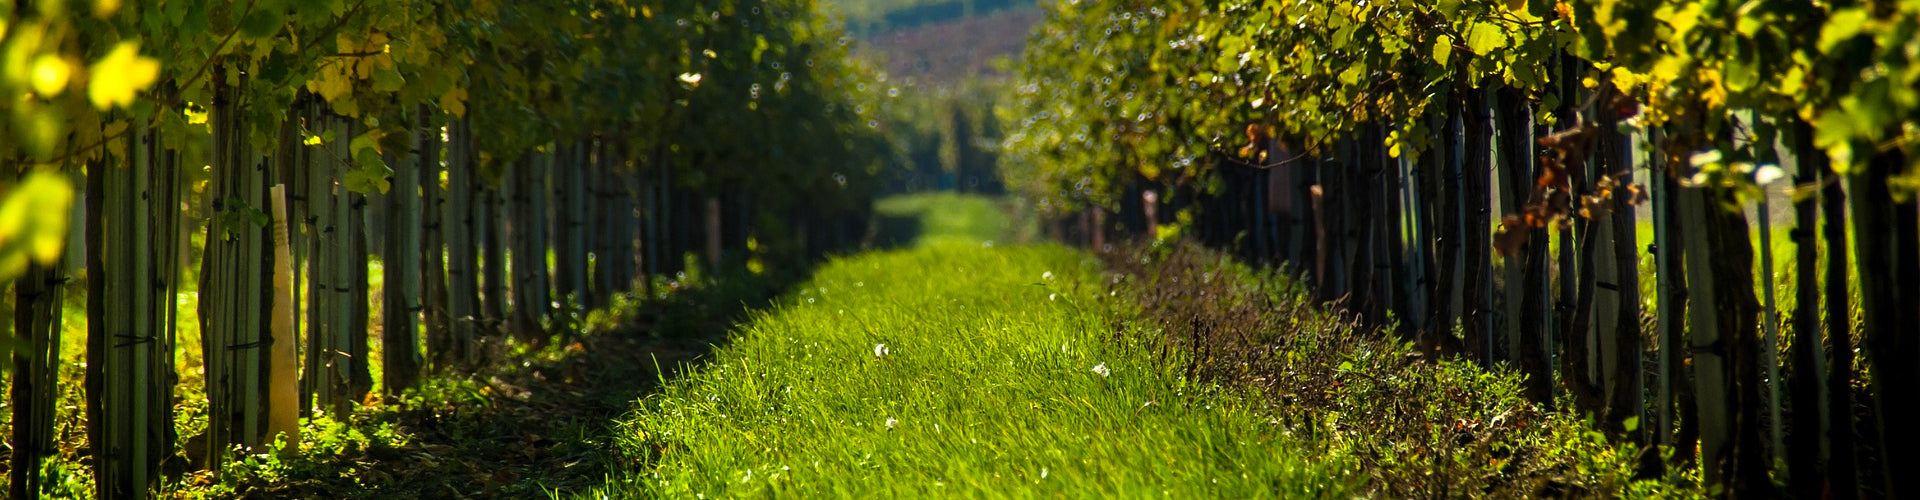 Organic vines in vineyard with grass and crop cover